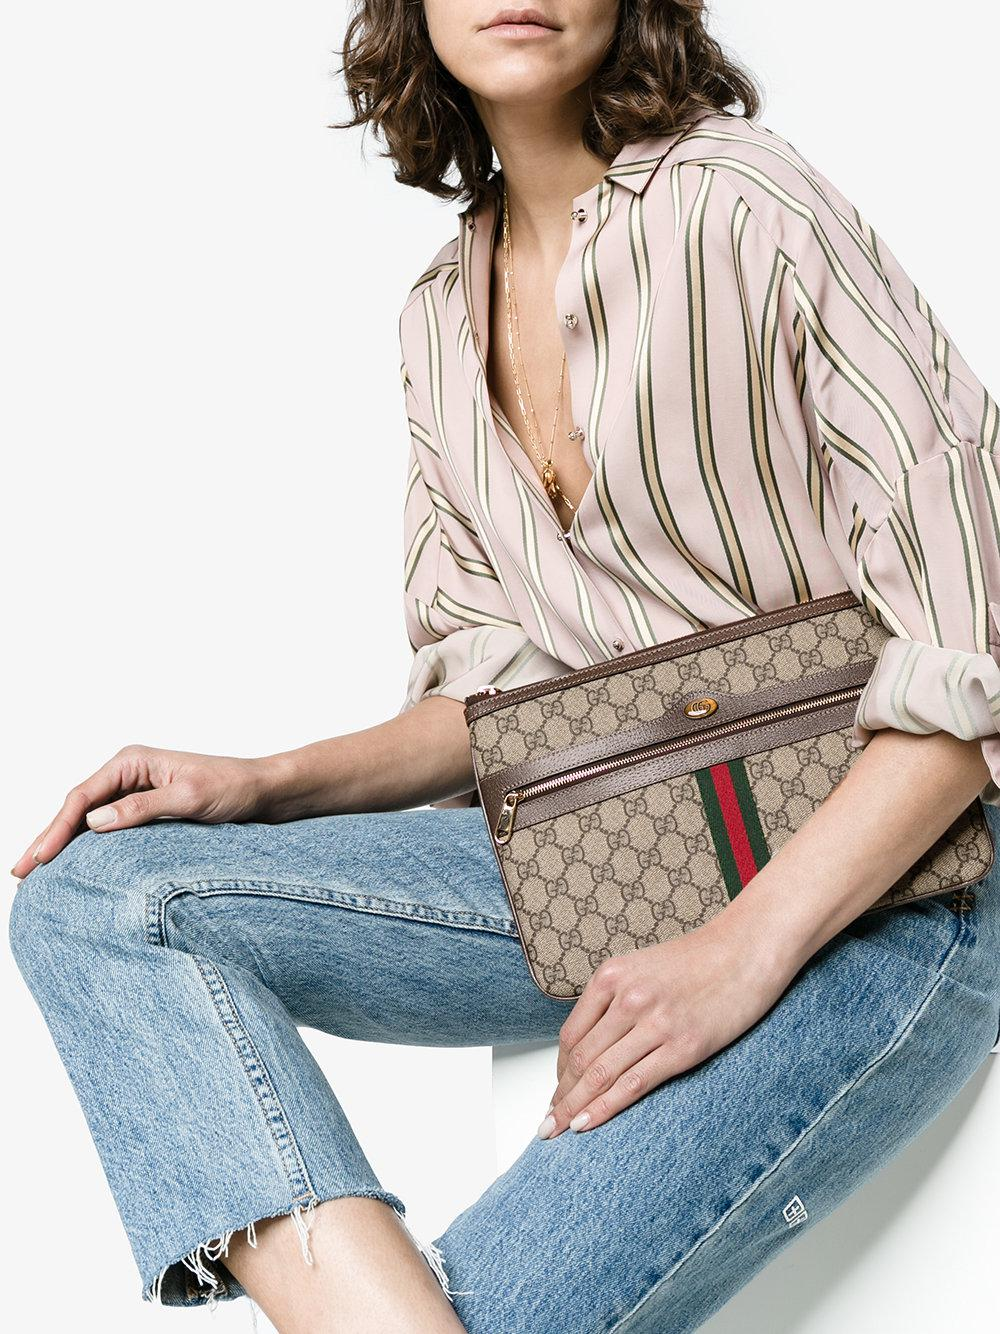 c21b5fafede204 Gucci Brown Ophidia GG Supreme Leather Pouch in Brown - Lyst